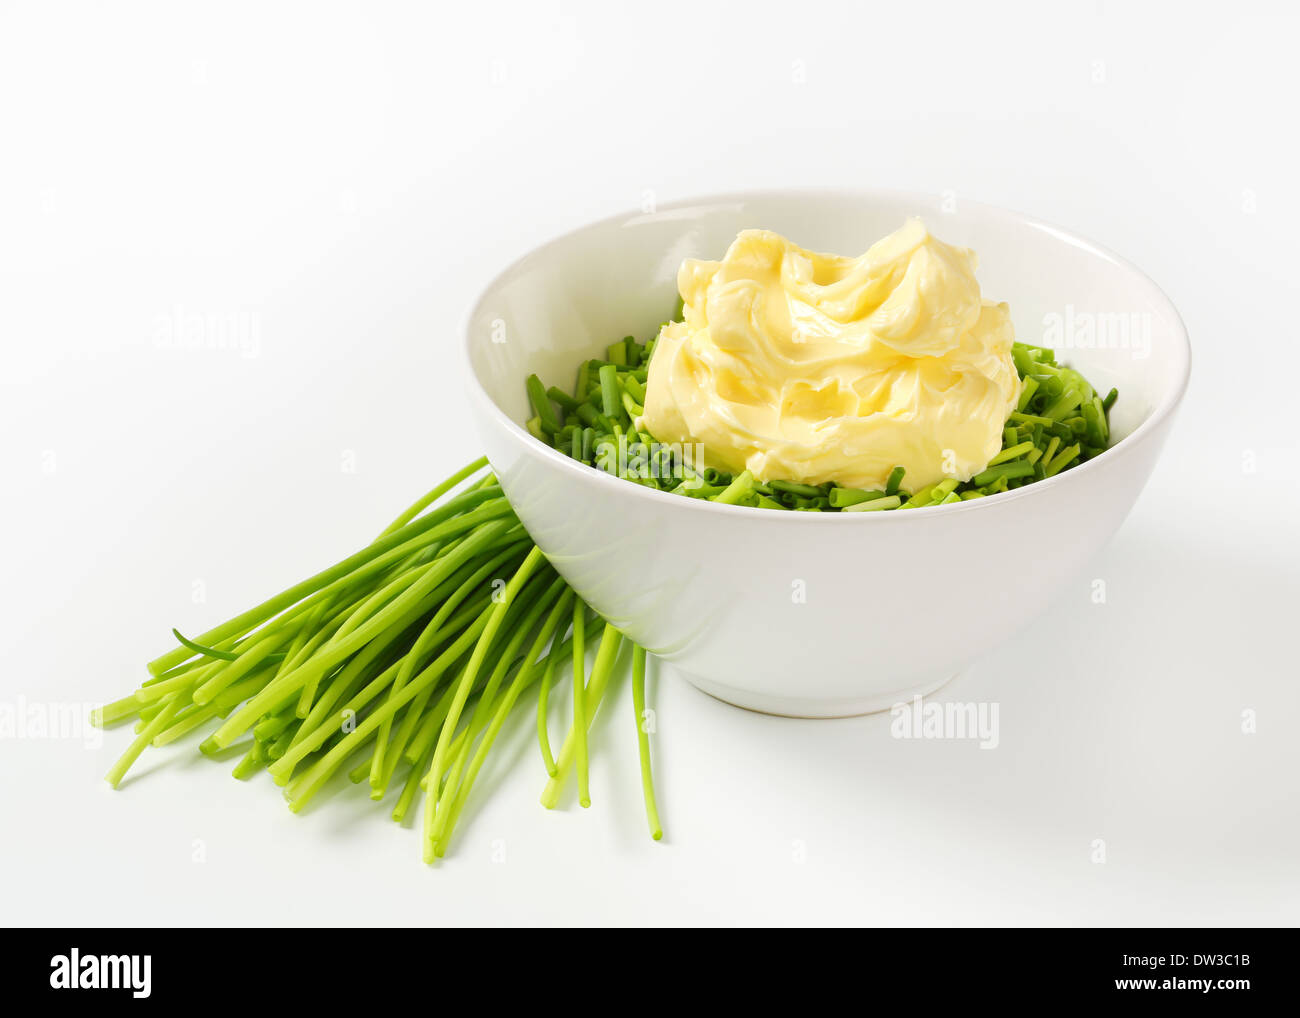 Chopped chives and butter in a bowl - Stock Image